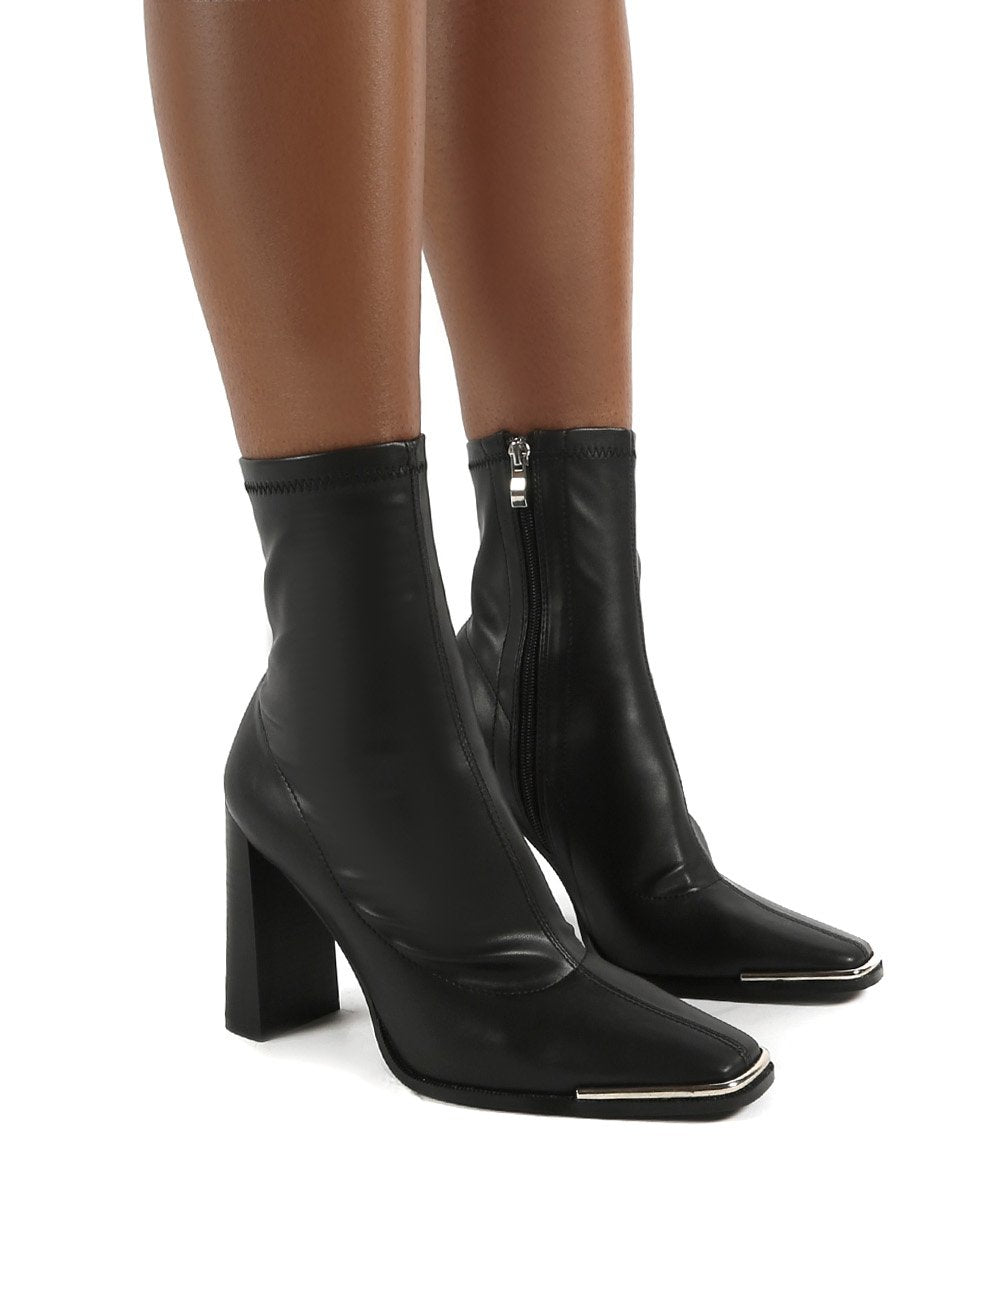 Liberty Black Sock High Heeled Ankle Boots - Us 5